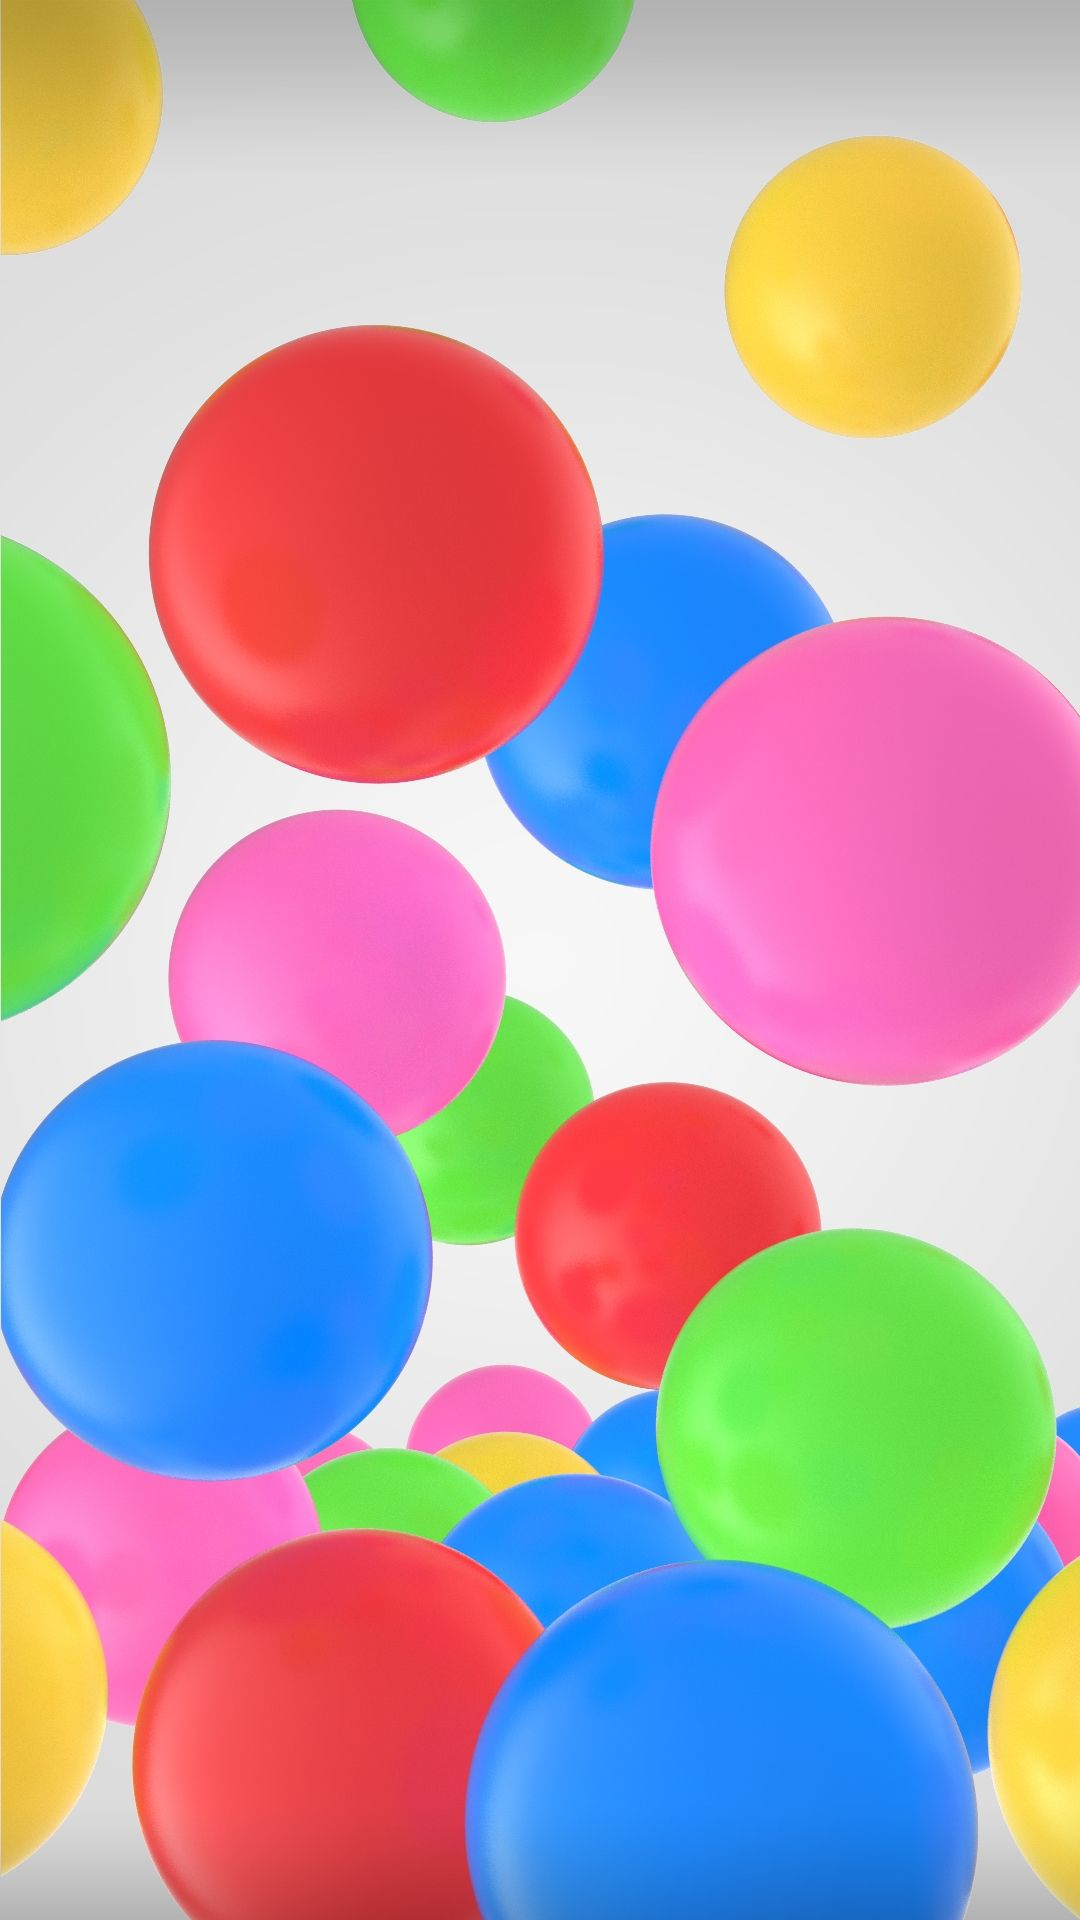 Hd wallpaper j7 prime - Samsung Galaxy A8 Wallpaper With Cool Colorful Bubbles